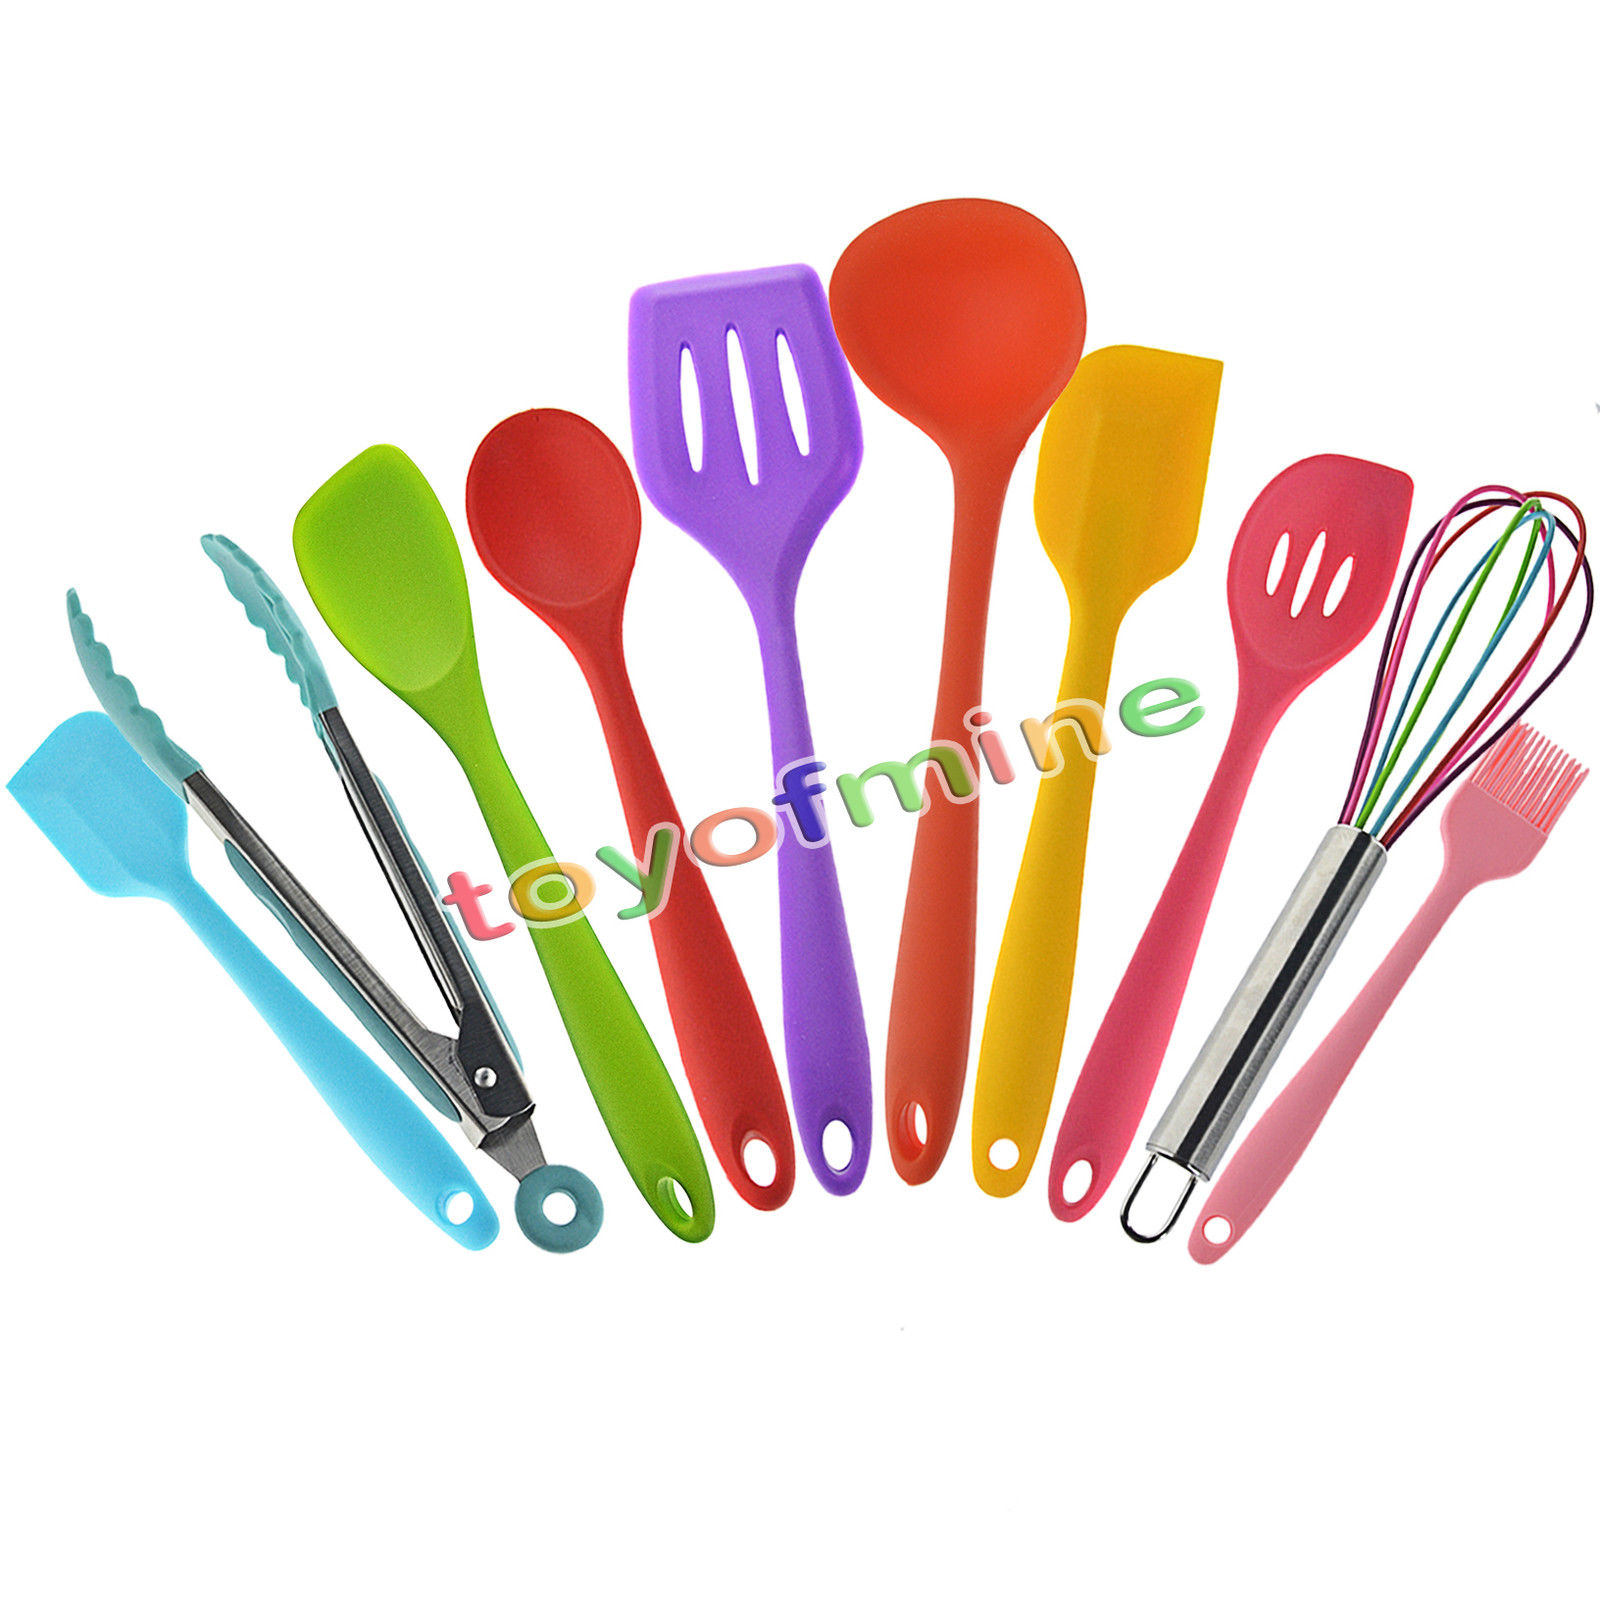 10pcs utensils heat resistant cooking utensil set non for Gambar kitchen set high quality